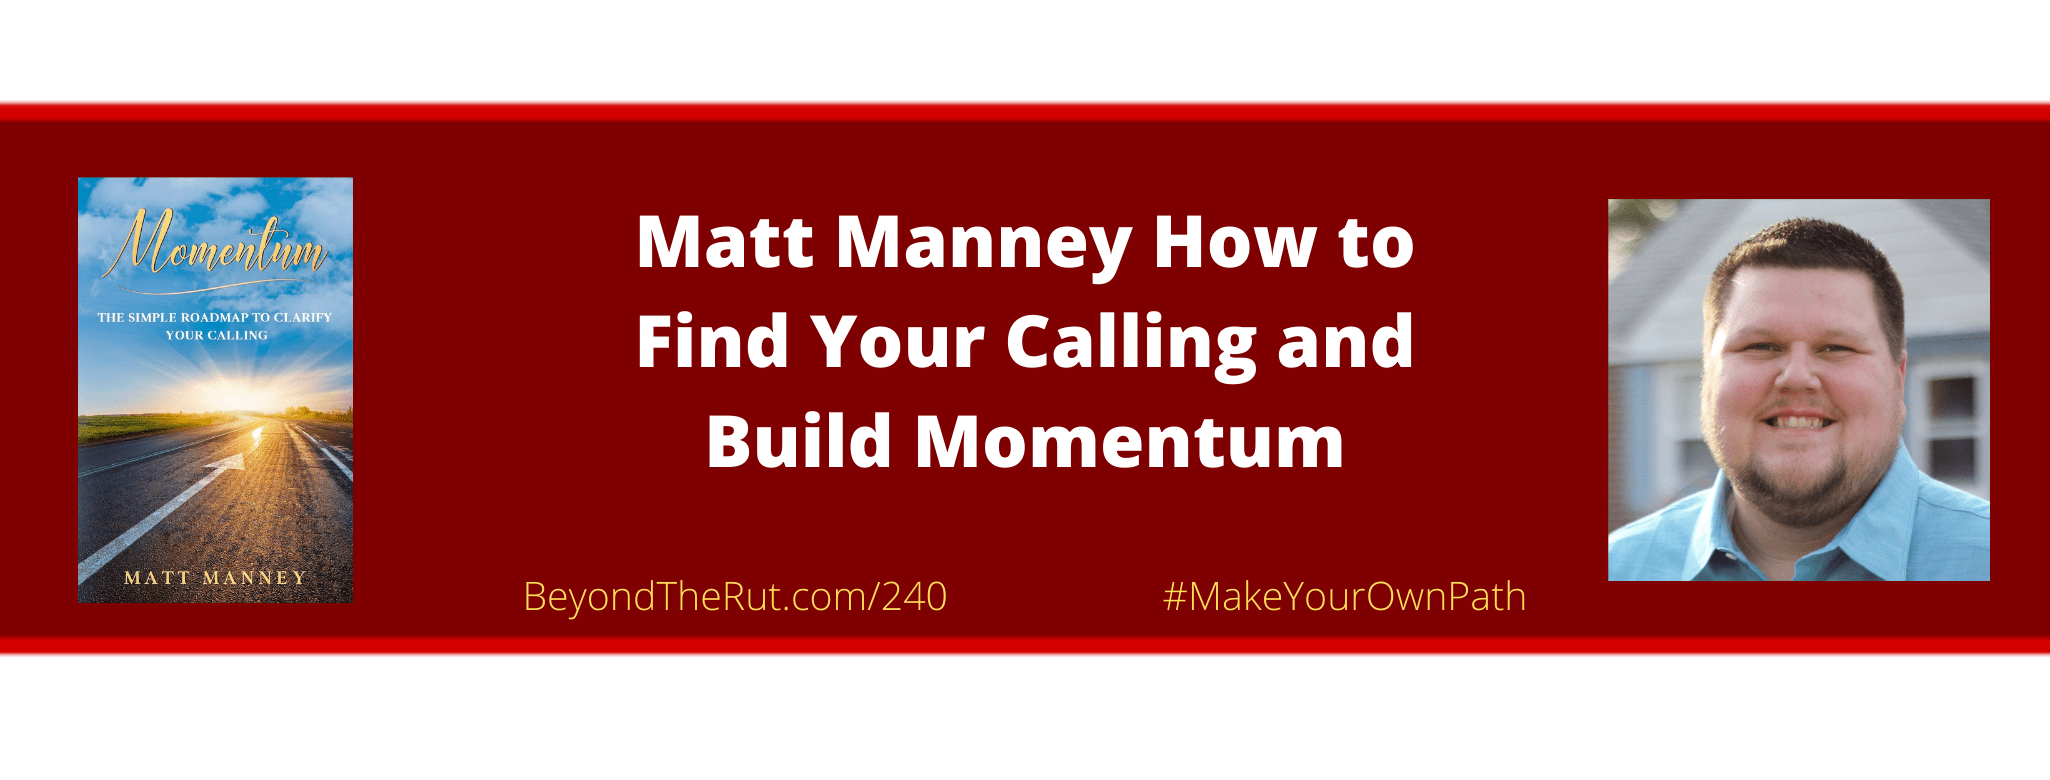 find your calling matt manney